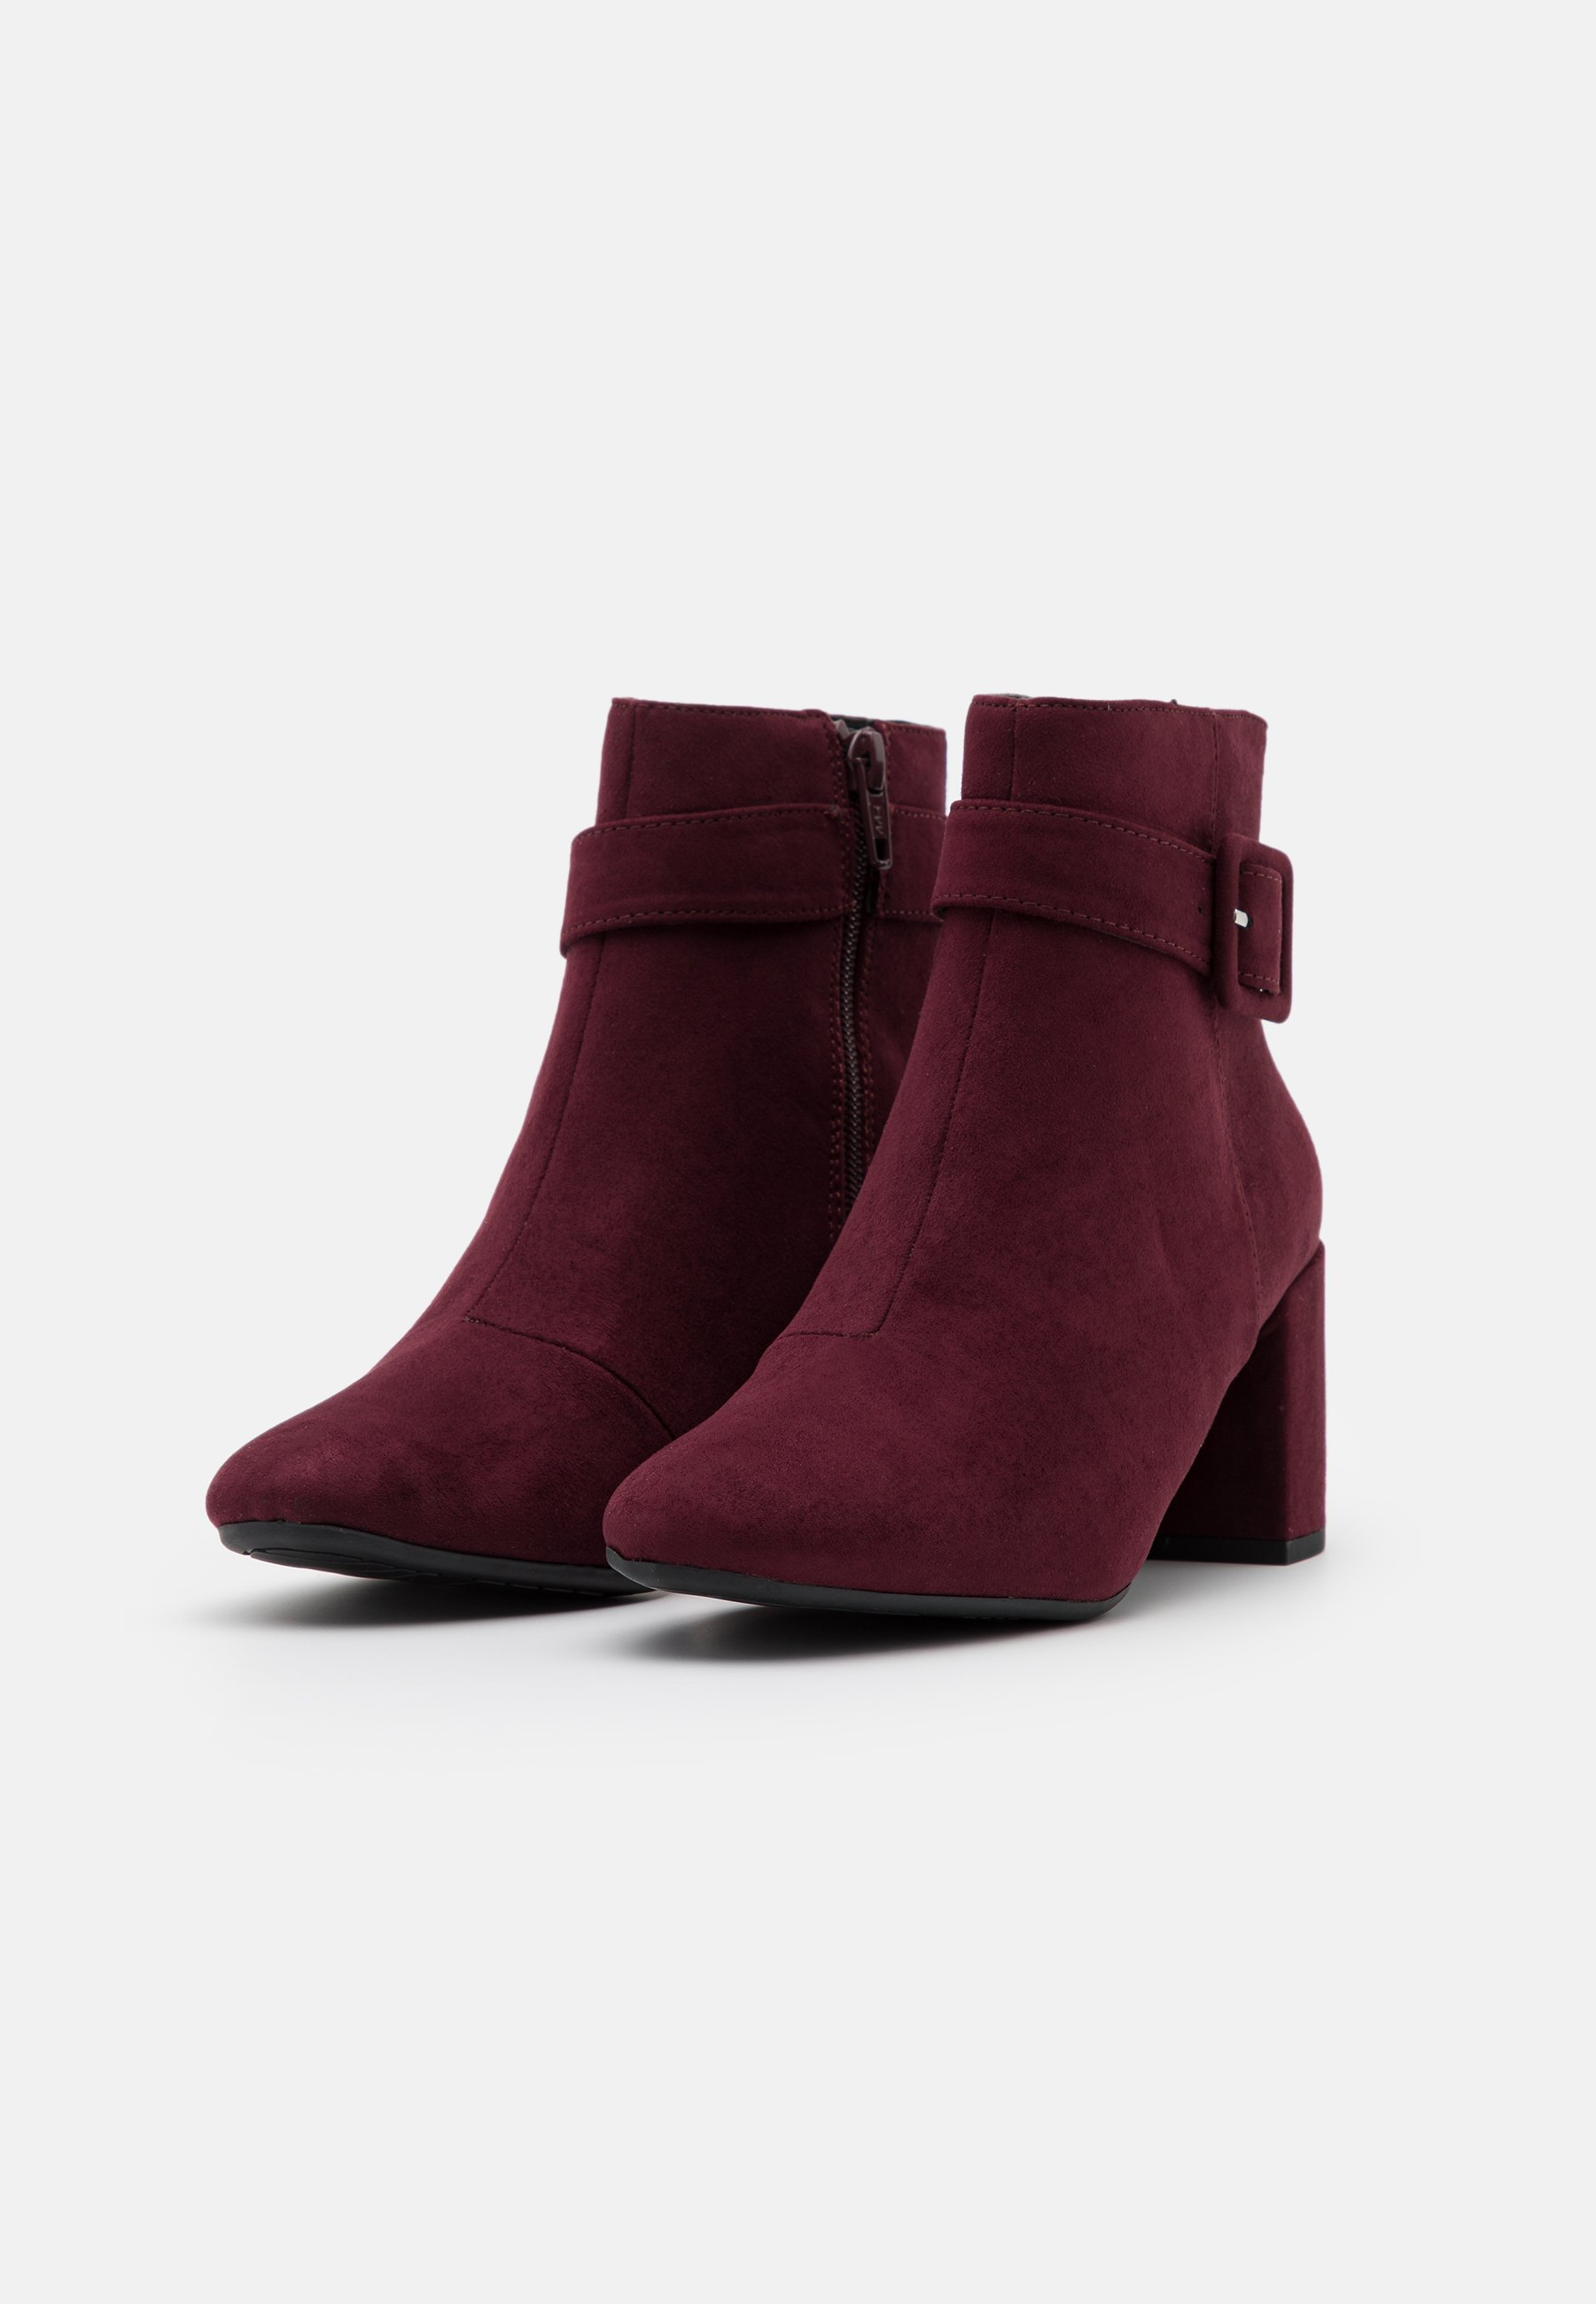 Dorothy Perkins Andi Covered Buckle - Ankle Boot Oxblood/bordeaux